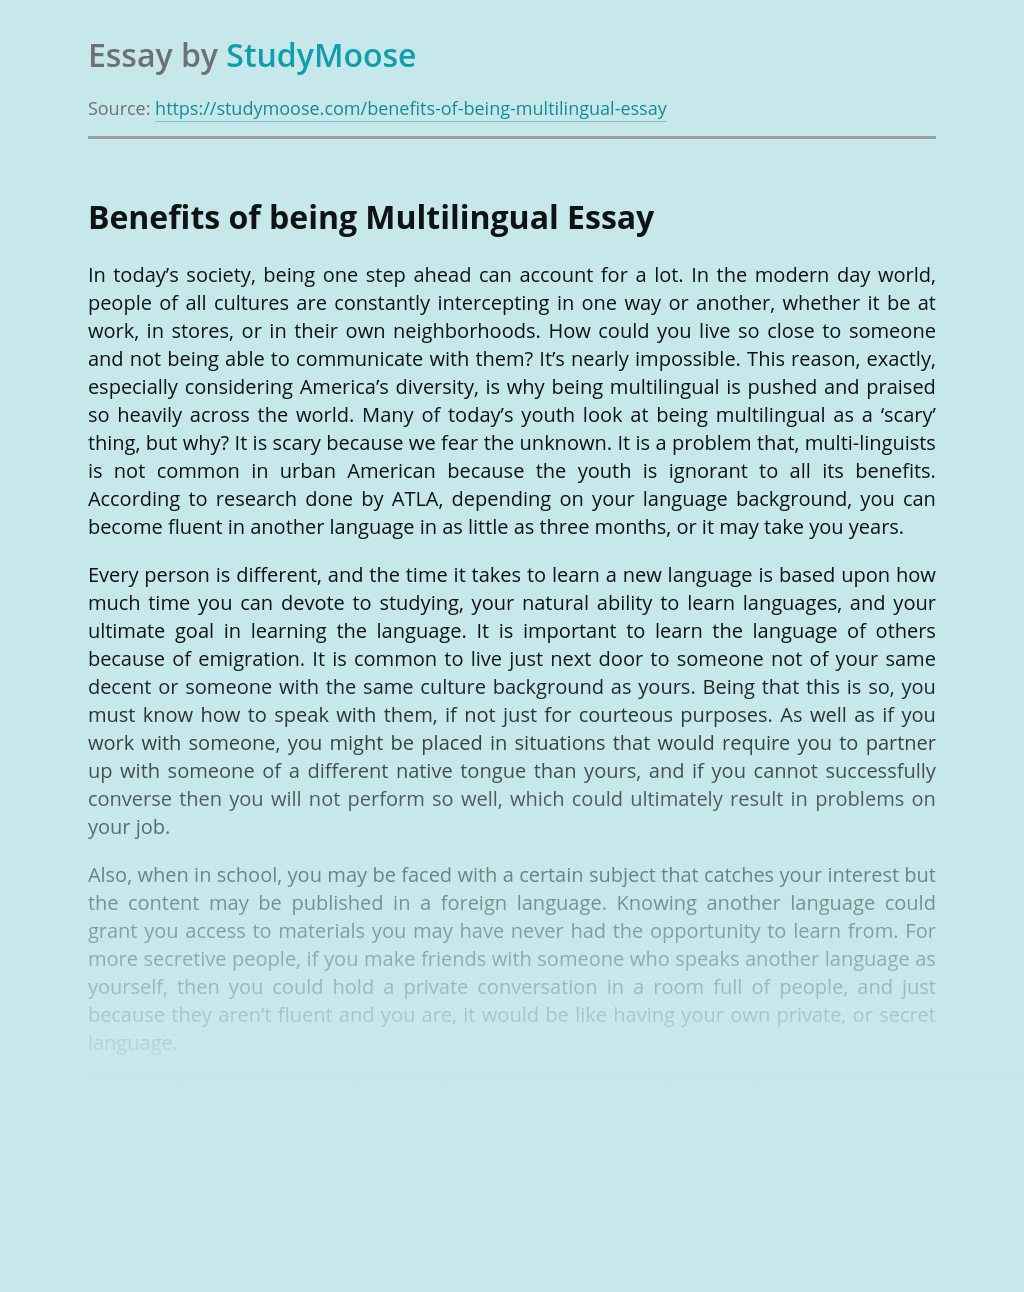 Benefits of Being Multilingual